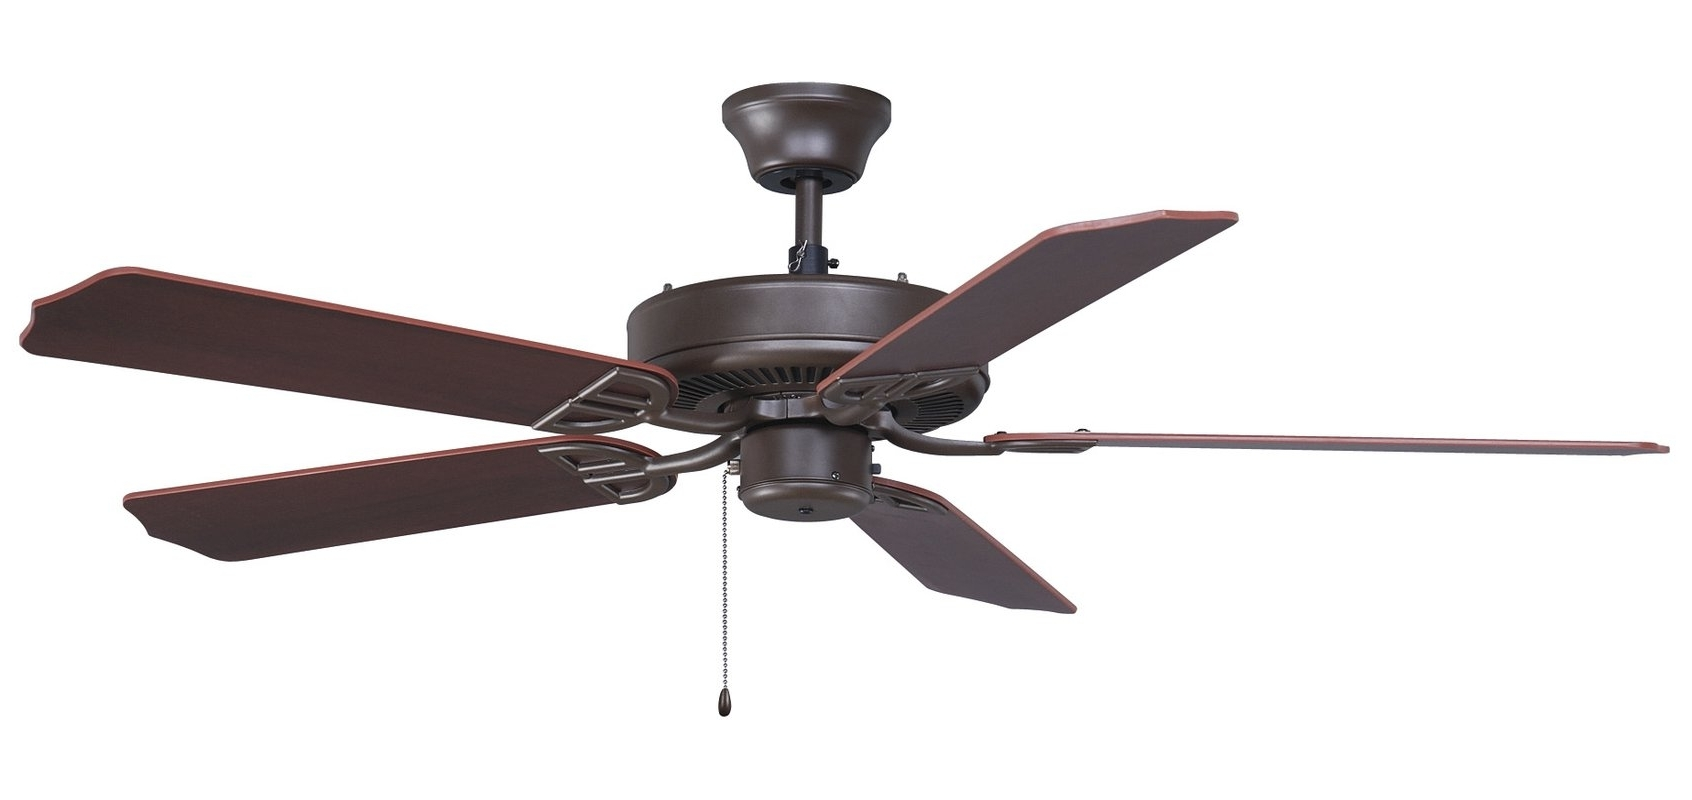 Outdoor Ceiling Fans With Removable Blades Throughout Most Recent Wet Rated Outdoor Ceiling Fans (View 18 of 20)